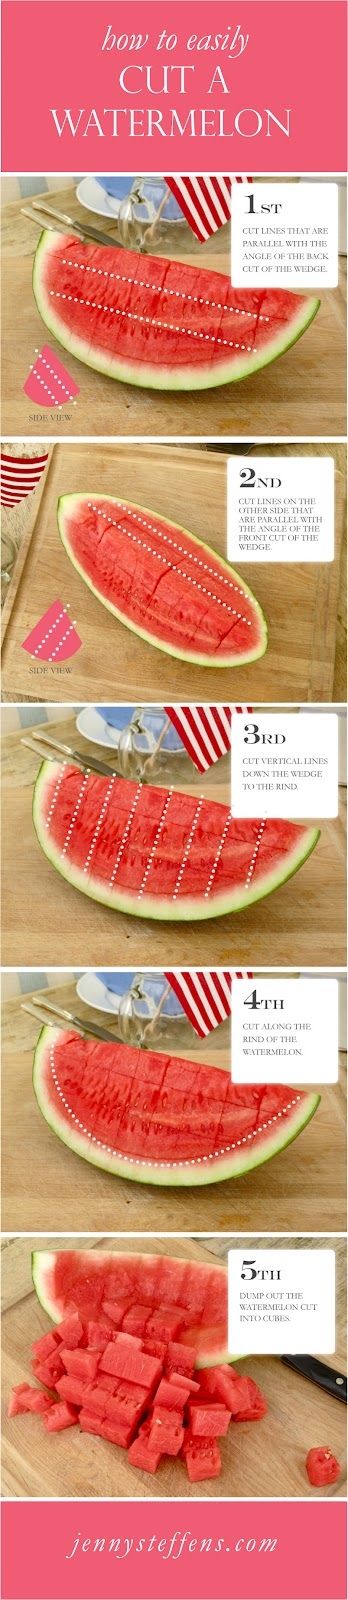 How to cut a watermelonm 2